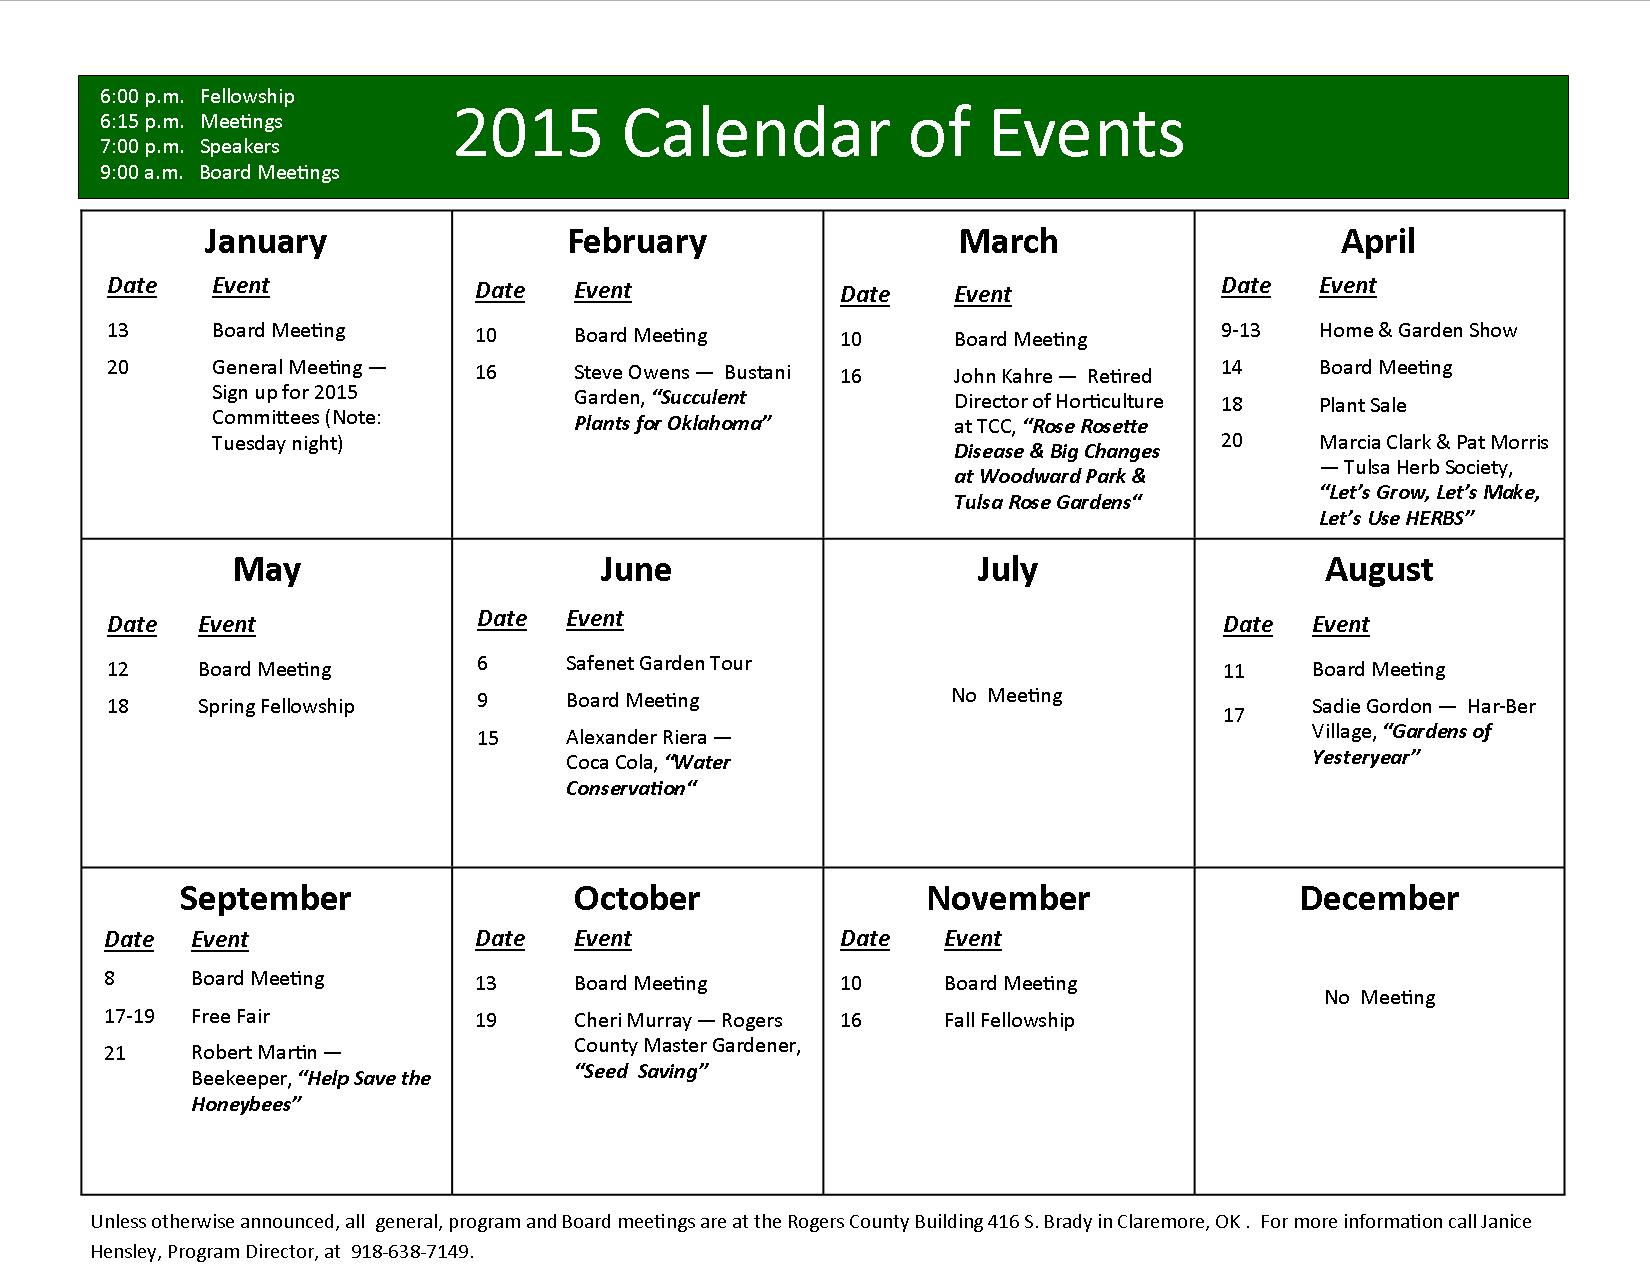 Yearly Event Calendar 2015 Template | yearly calendar printable